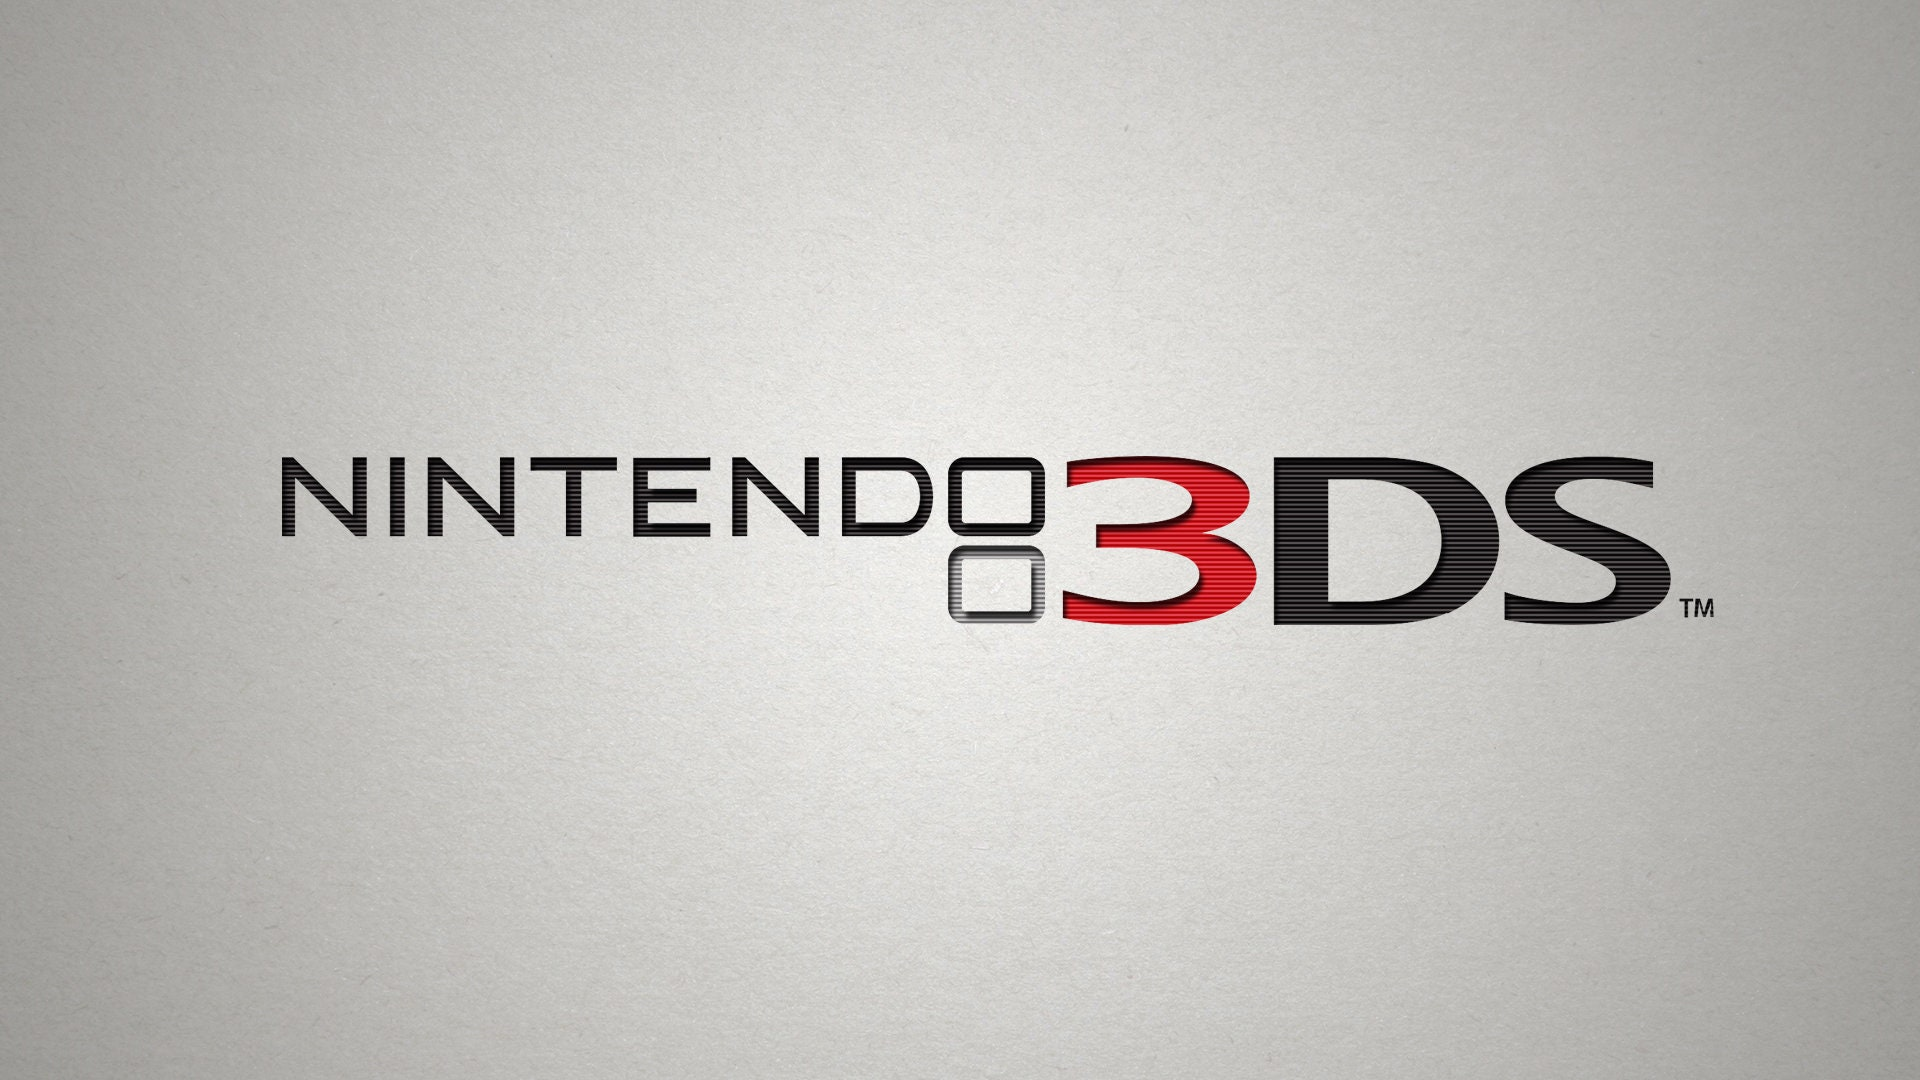 Nintendo 3DS Complete* Collection! Hard Drive